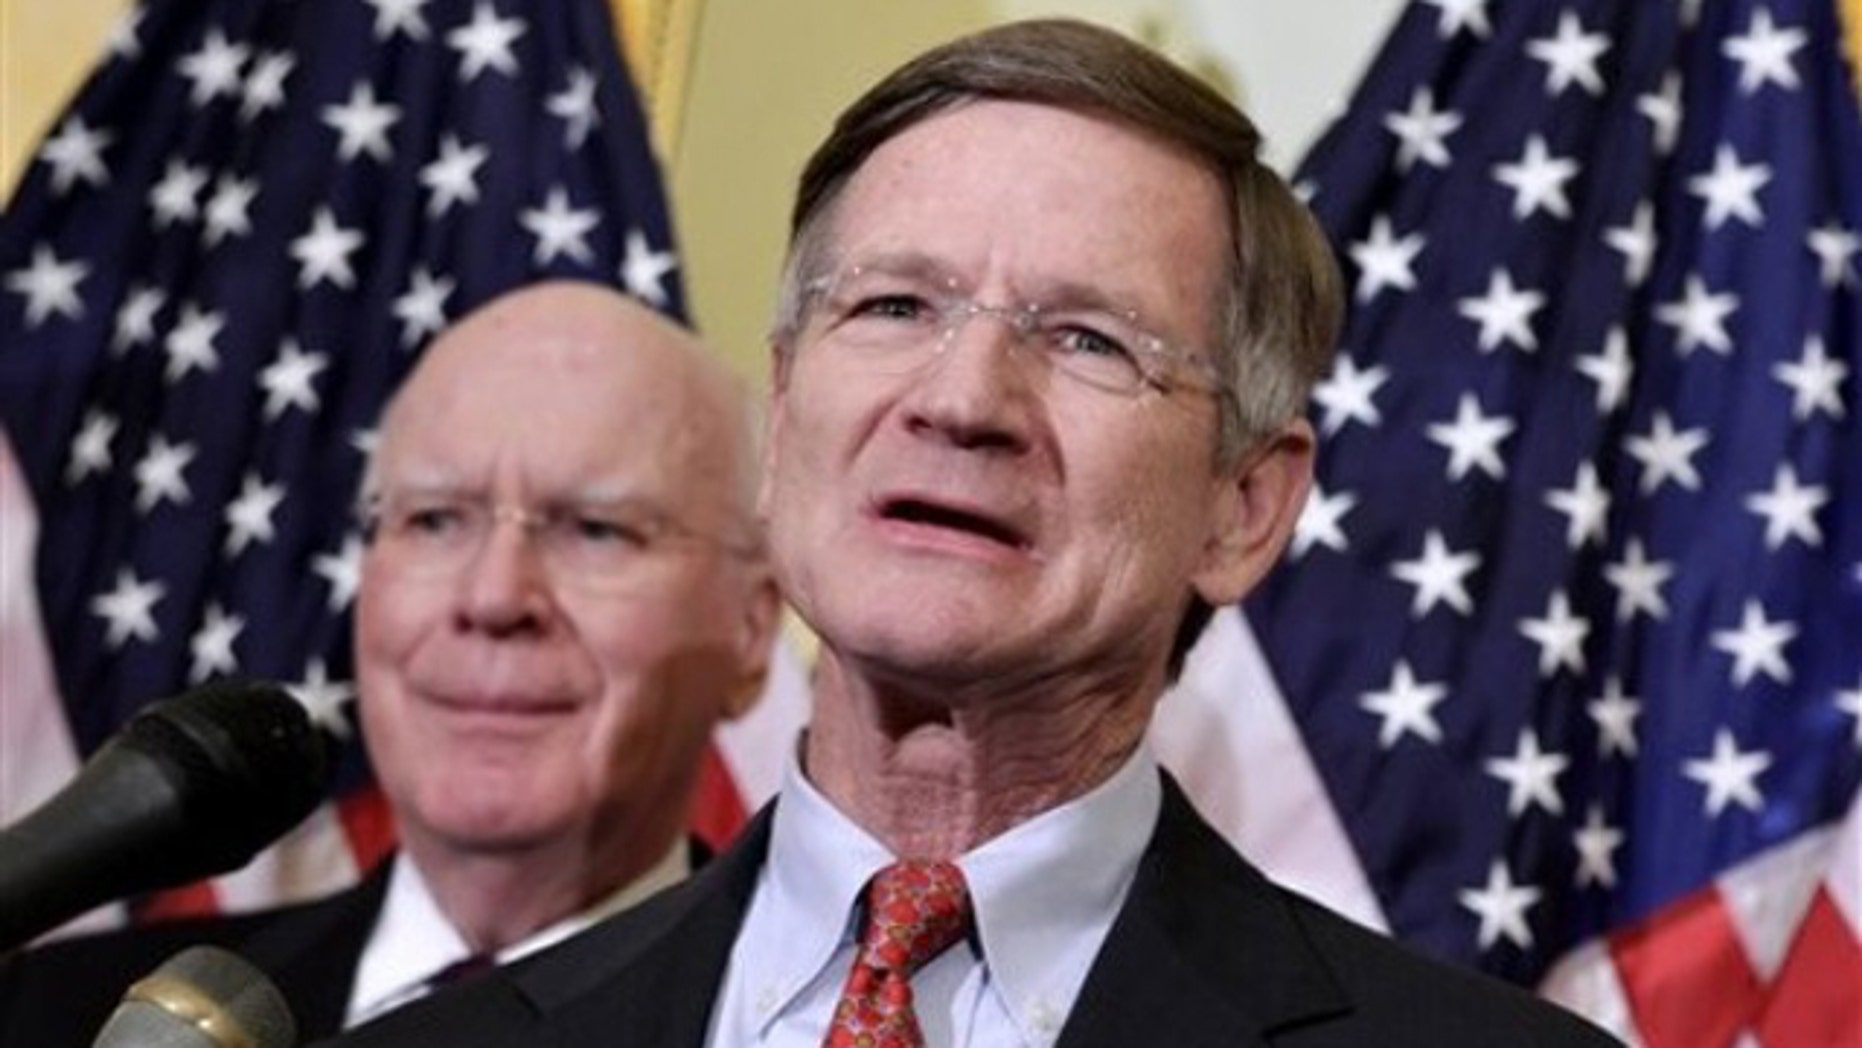 April 4, 2011: Rep. Lamar Smith, right, accompanied by Sen. Patrick Leahy, speaks during a news conference on Capitol Hill about online piracy.